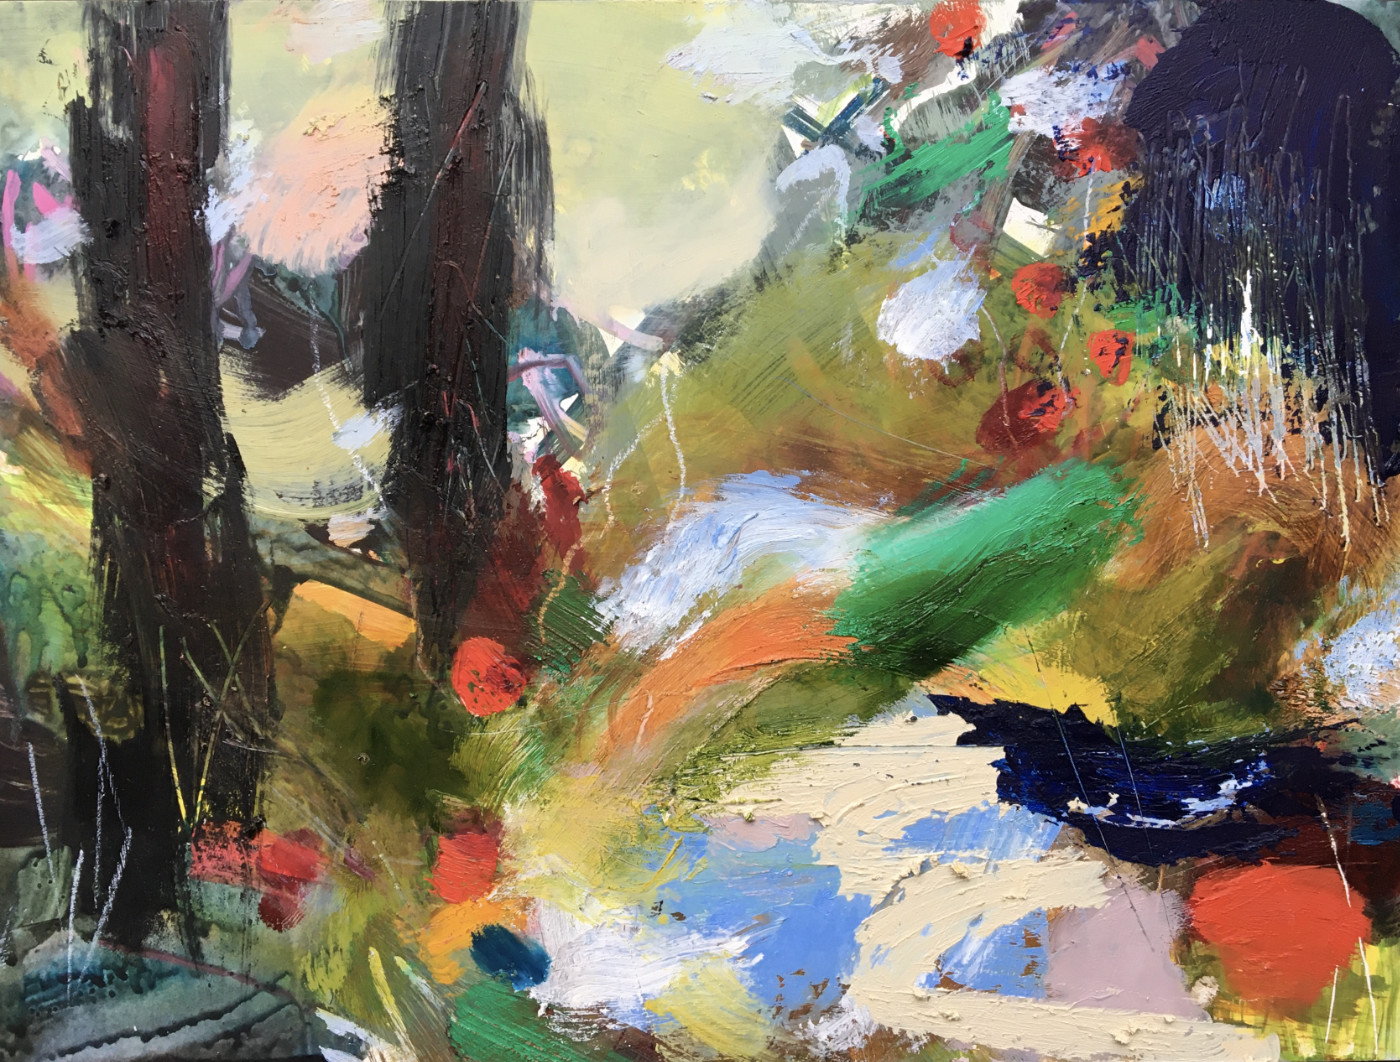 Lesley Birch, A Woodland Place